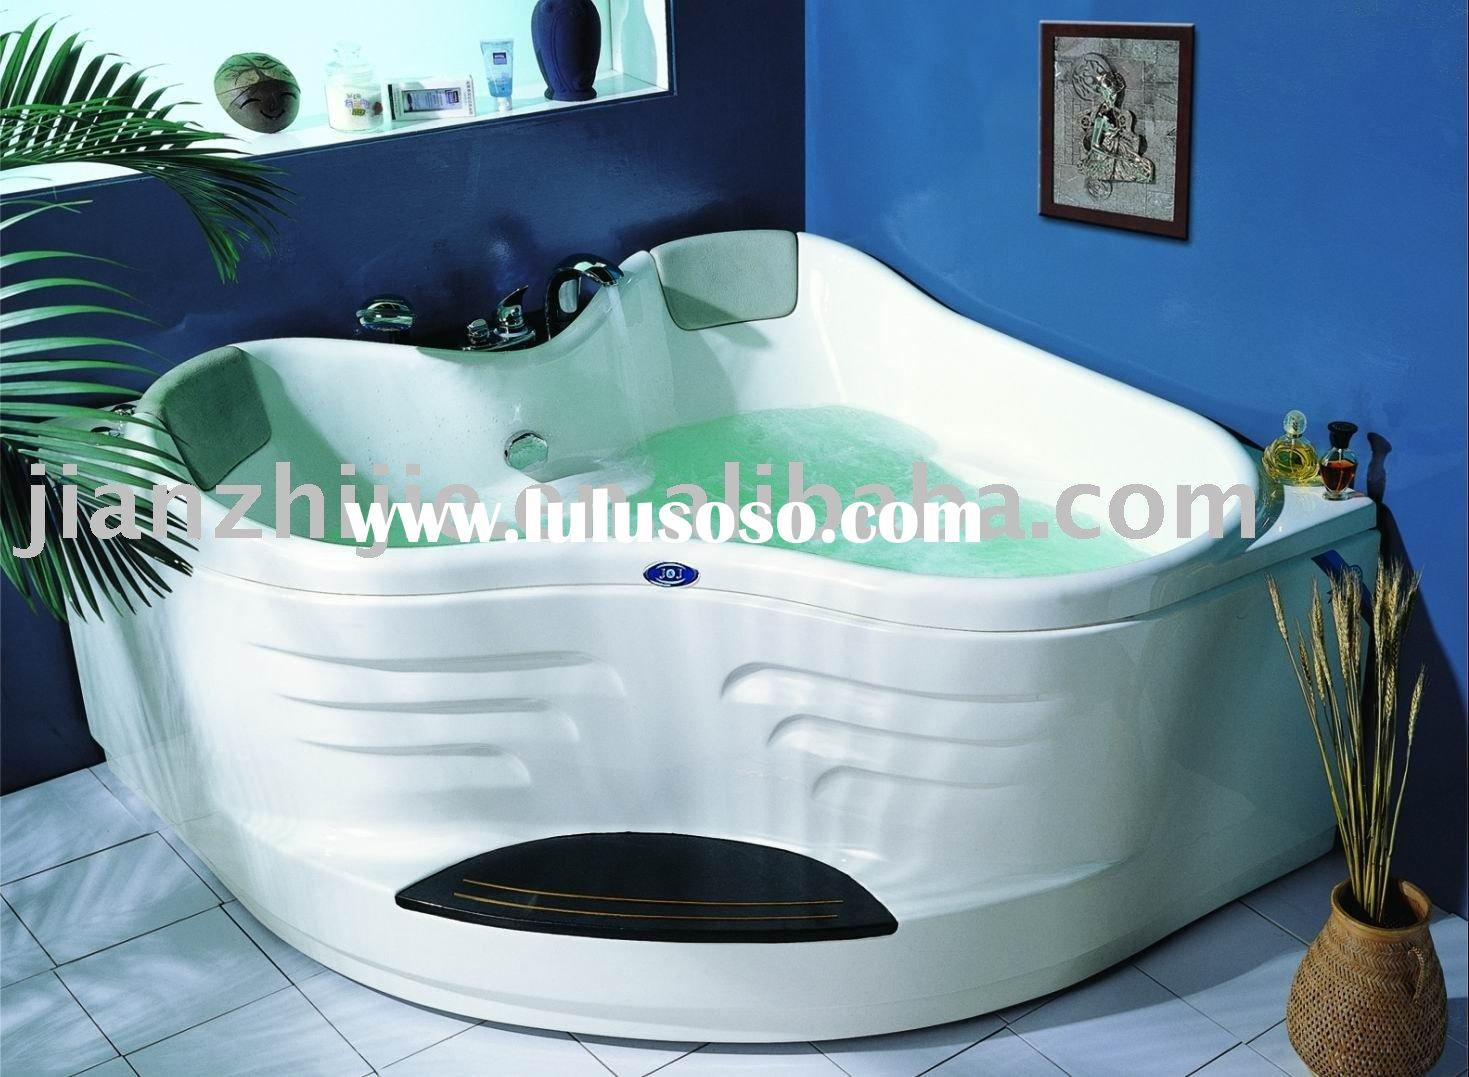 Jacuzzi Tub Dimensions - Kids Art Decorating Ideas